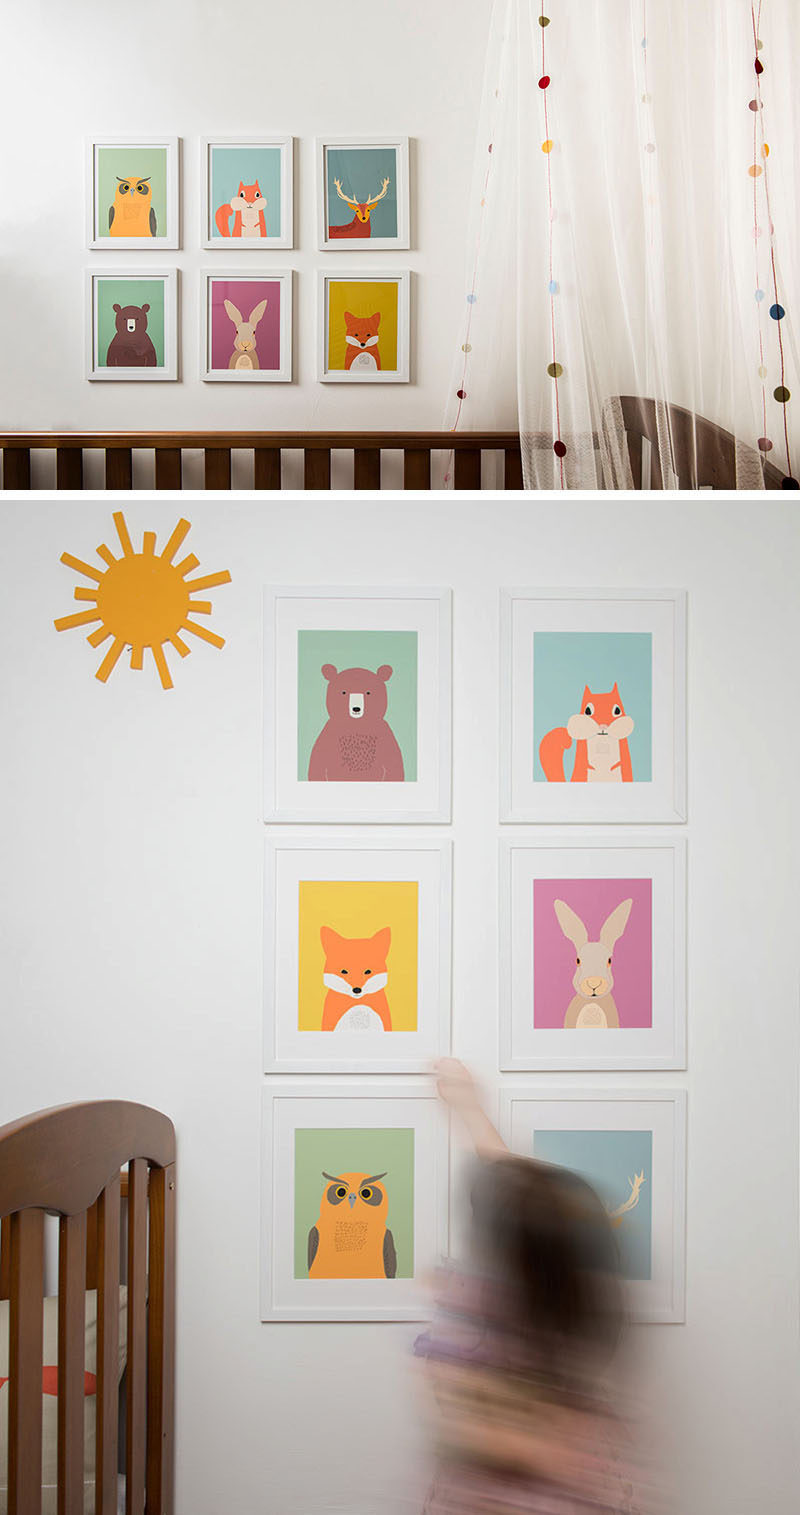 15 Decor Ideas For Creating A Woodland Nursery Design // Include your favorite woodland creatures in the nursery with cartoon prints on colorful backgrounds that are in keeping with the other colors in the room.